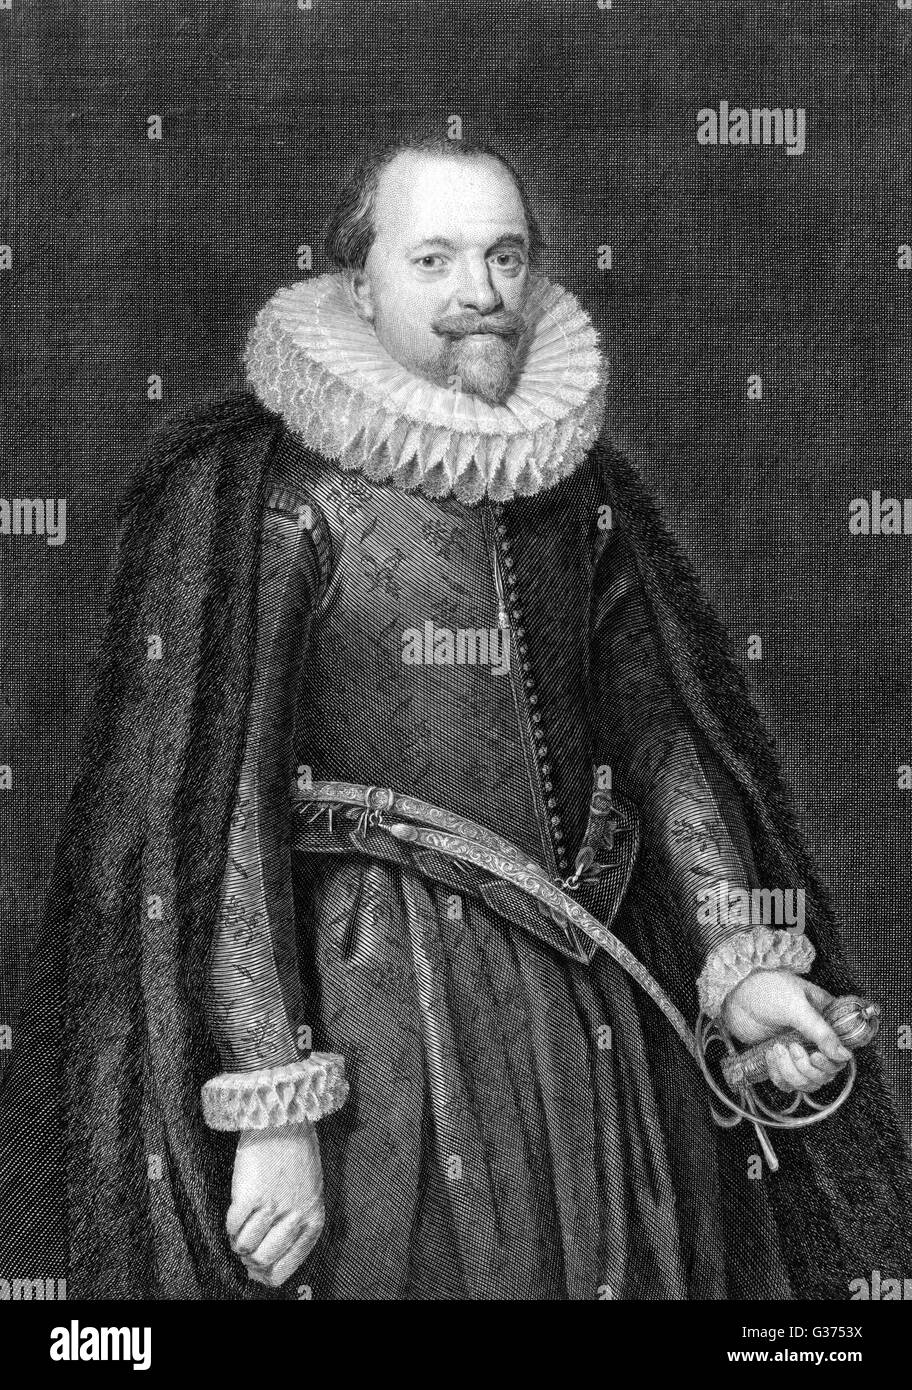 Sir RALPH WINWOOD statesman, secretary of state  and diplomat, aged 49.        Date: 1563 - 1617 - Stock Image